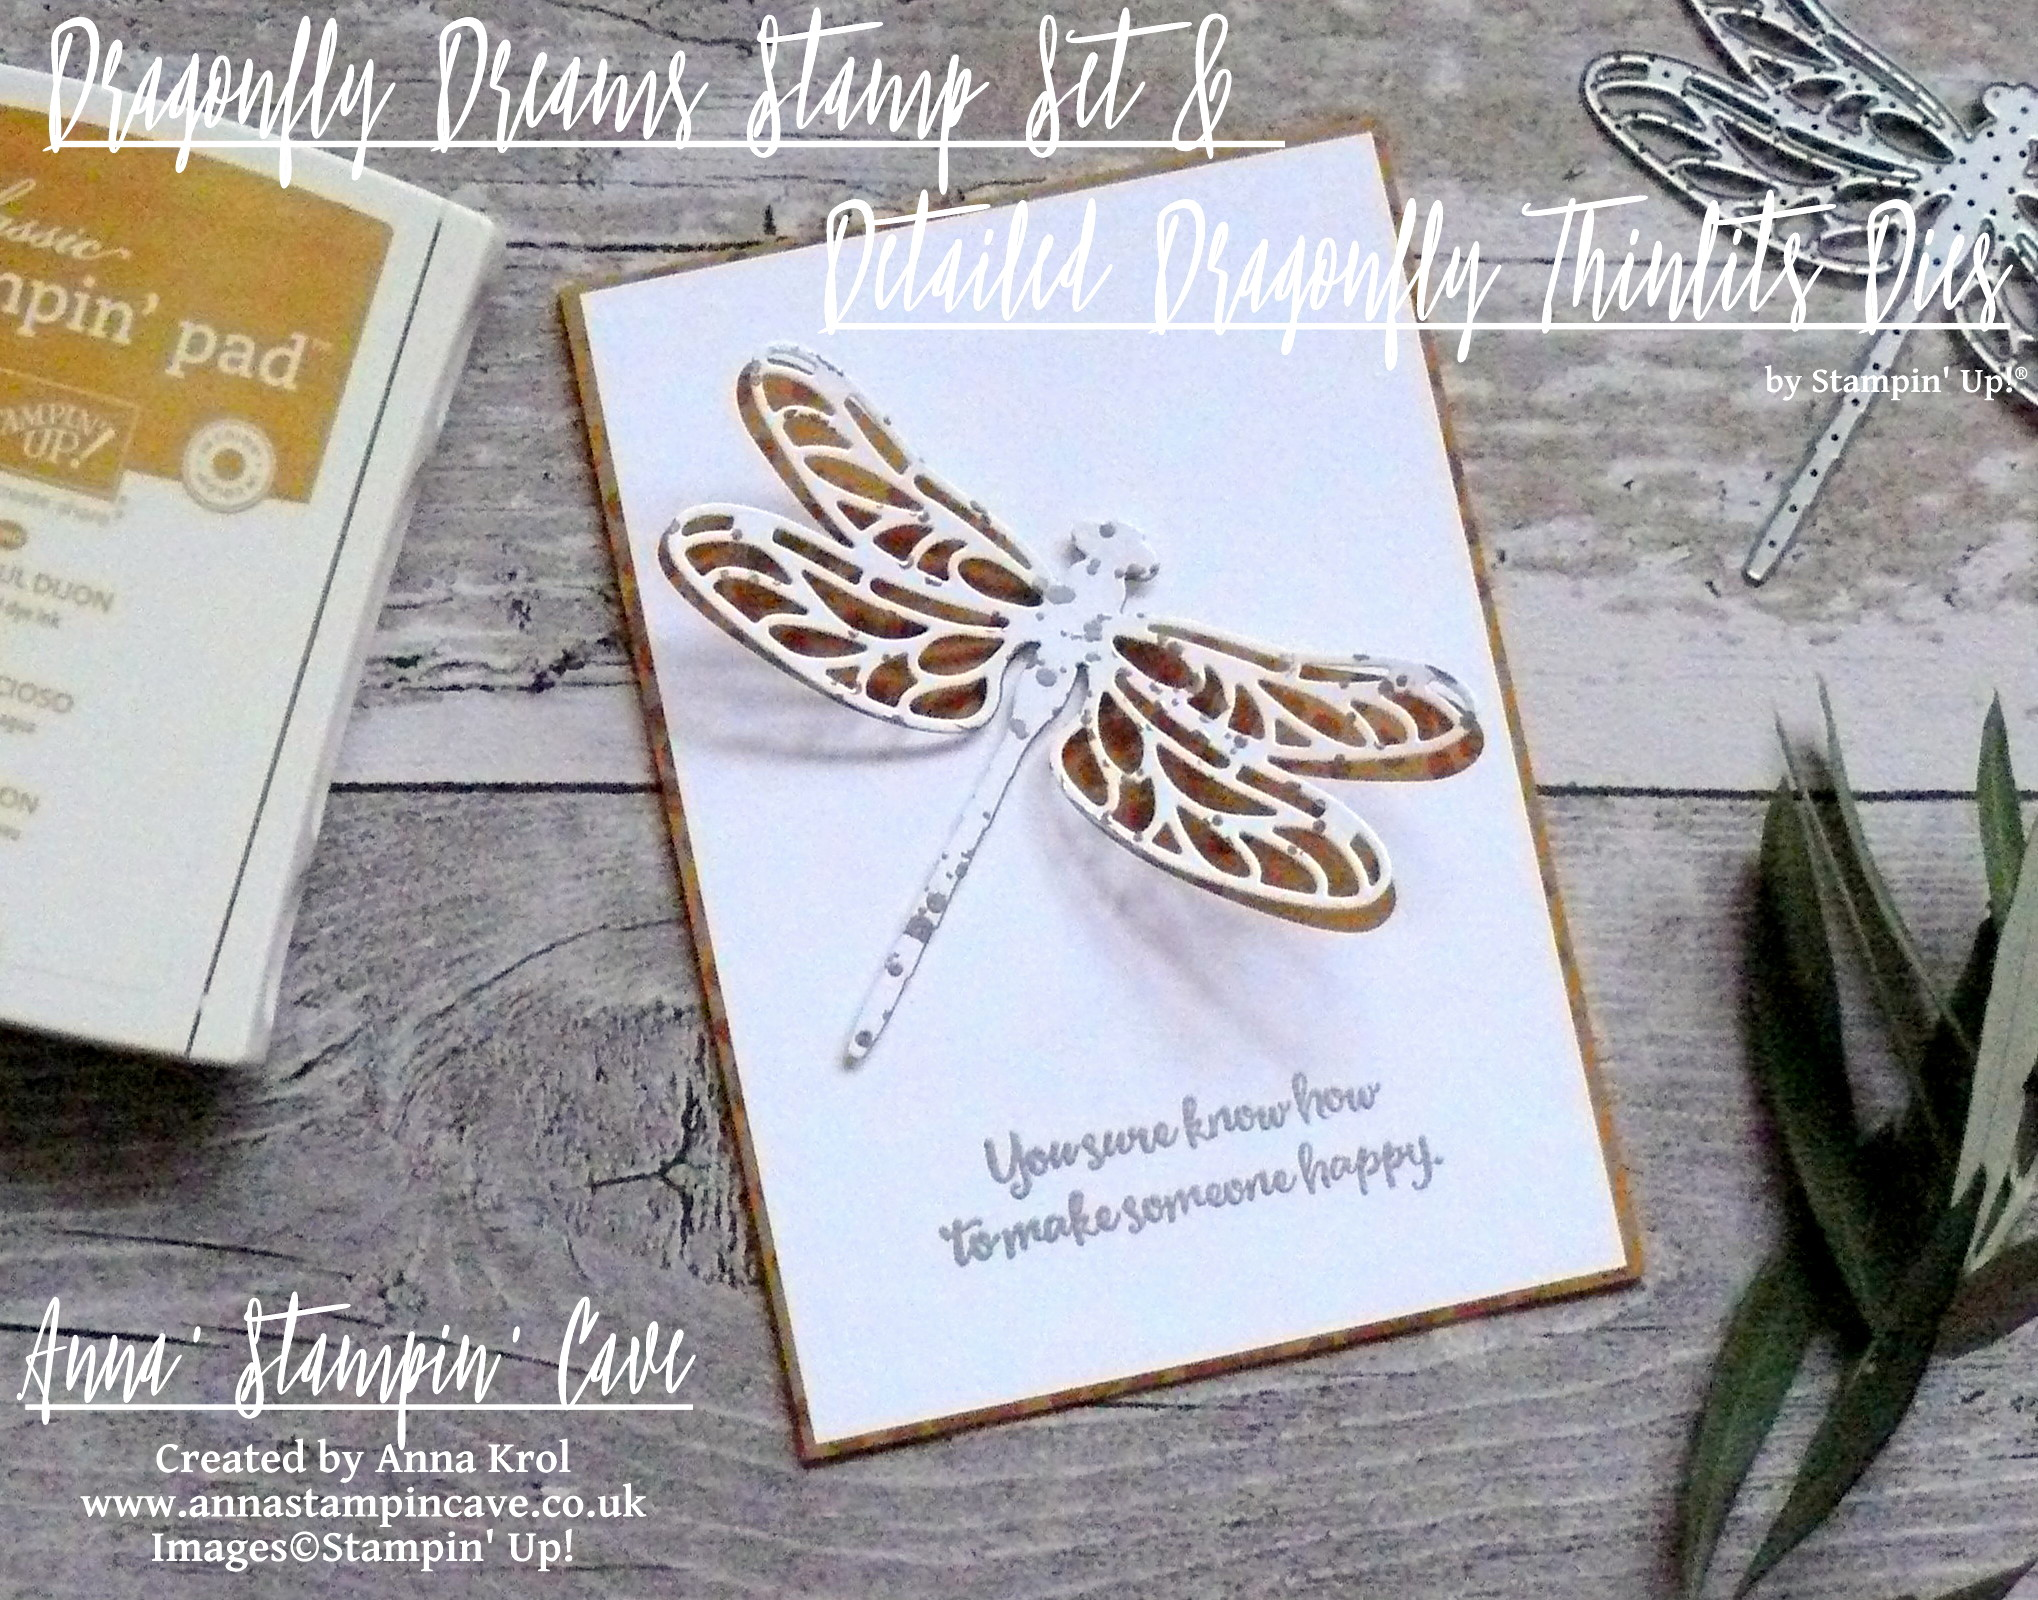 anna-stampin-cave-stampin-up-dragonfly-dreams-stamp-set-and-dies-bundle-clean-and-simple-card